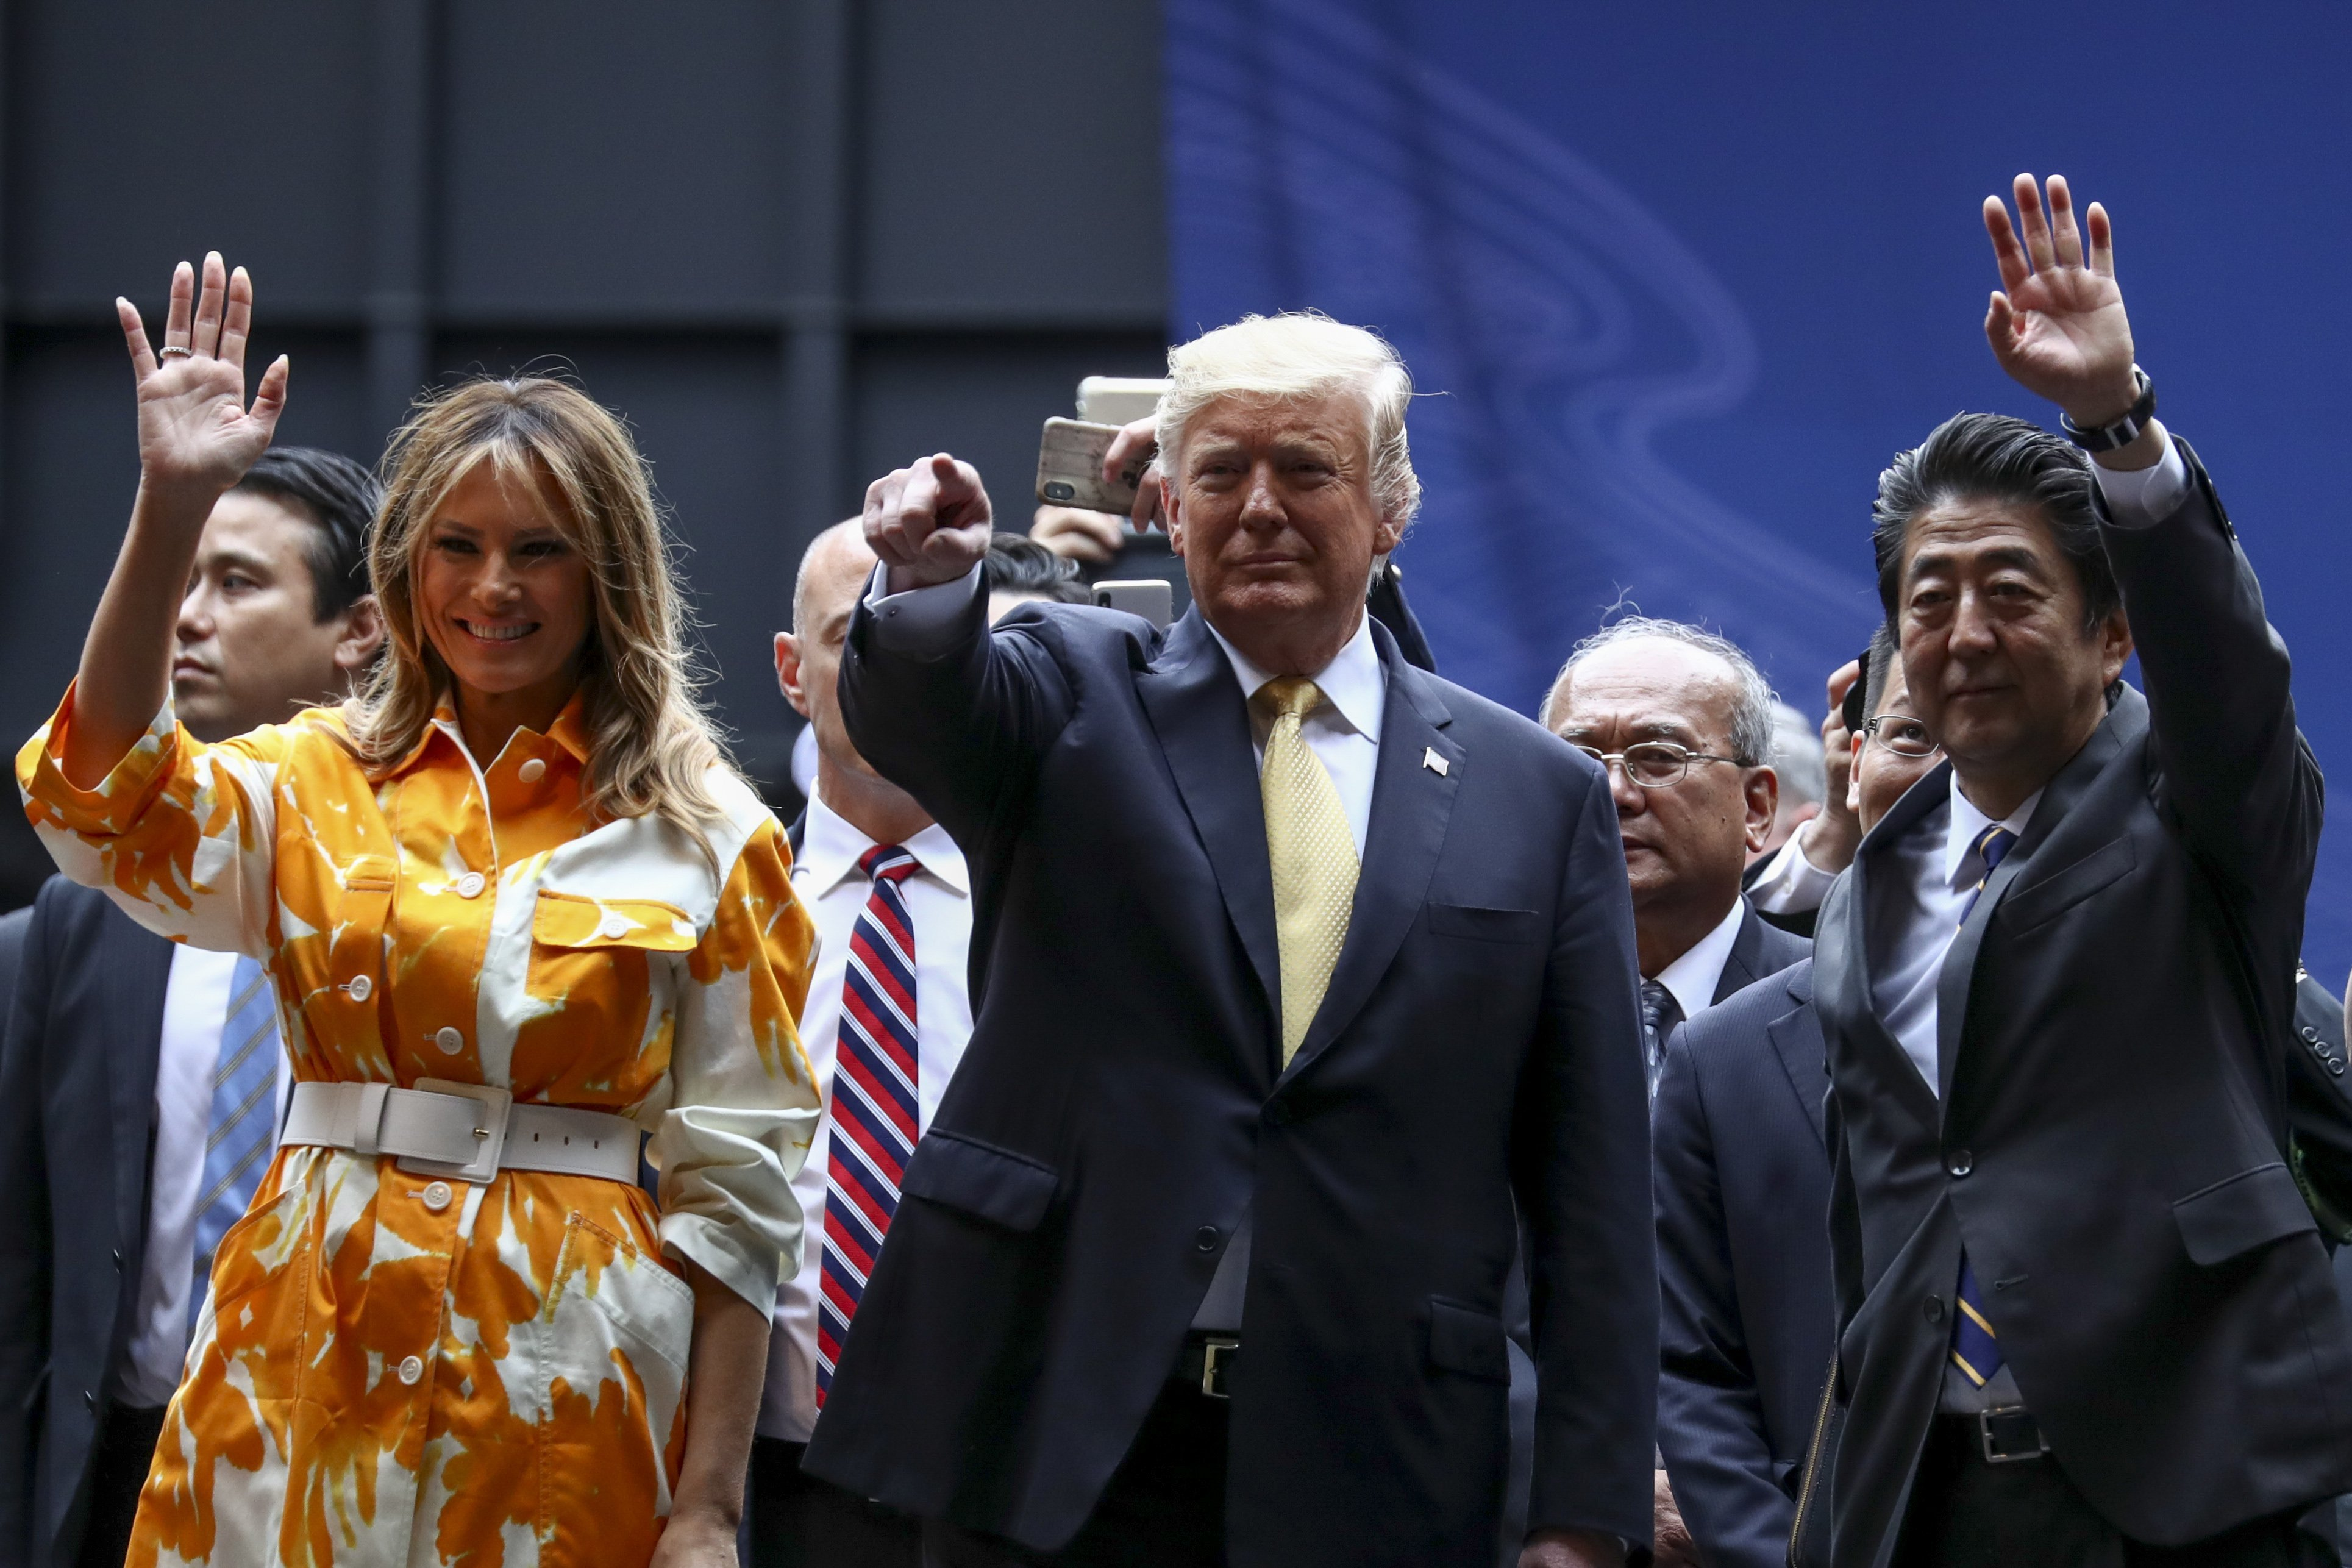 Donald Trump, Melania Trump and Shinzo Abe aboard the helicopter carrier DDH-184 Kaga in Tokyo, Japan | Photo: Getty Images